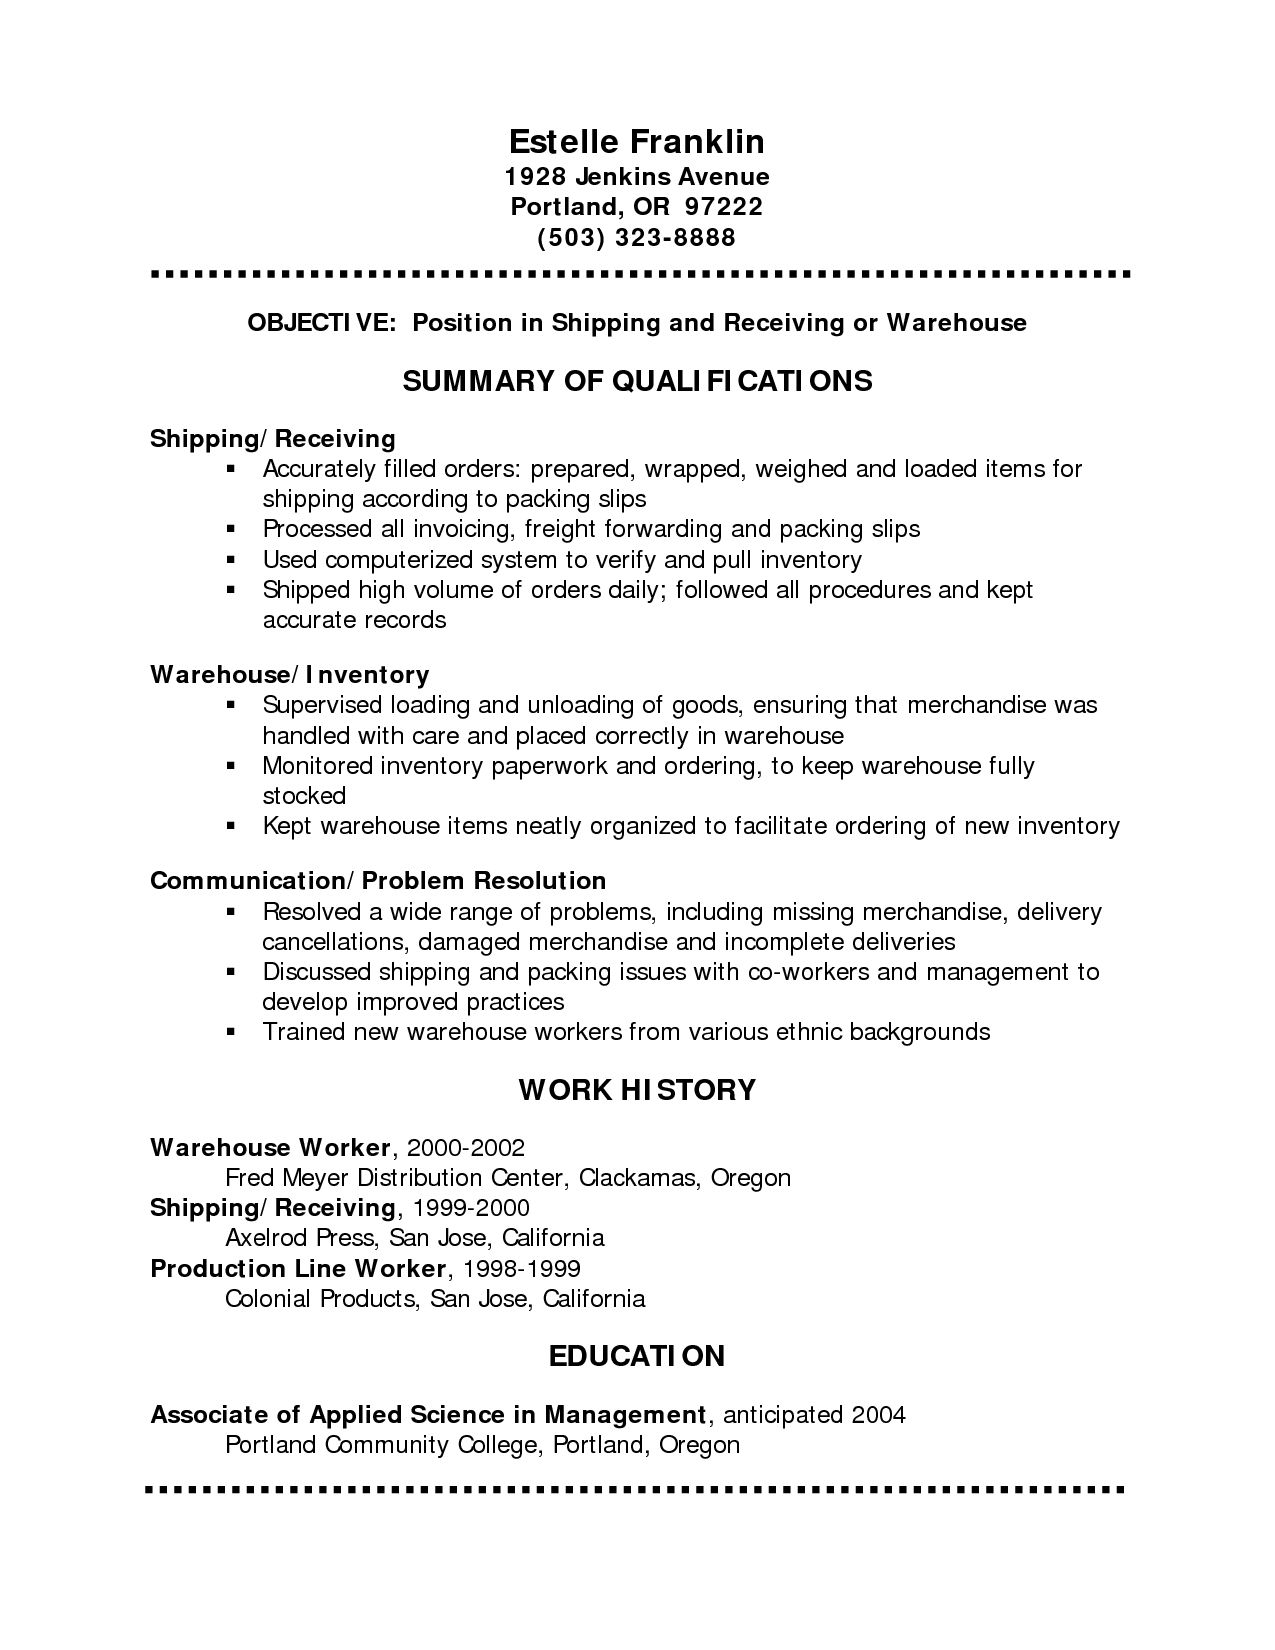 A Good Resume Example Apa Resume Sample Computer Engineer Cover Letter Costume